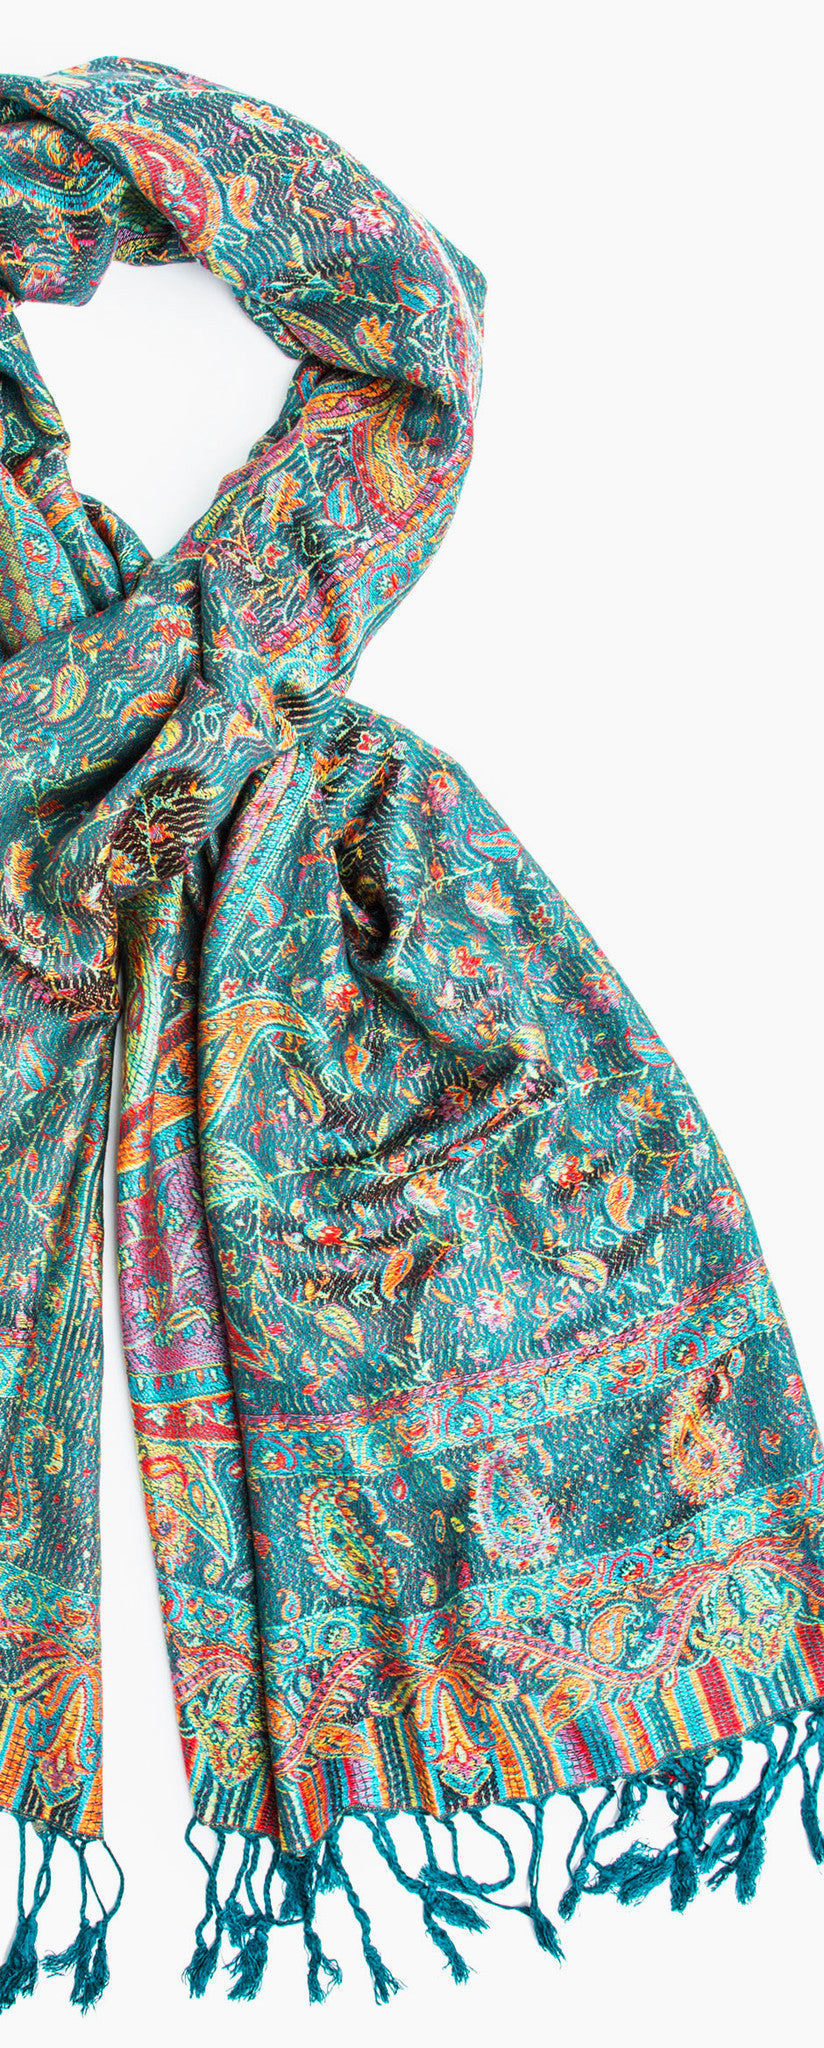 Scarves - Tiaja Scarf, Pashmina Indian Paisley Traditional Jacquard Scarf - hand made in India -() Bohomonde  - 6